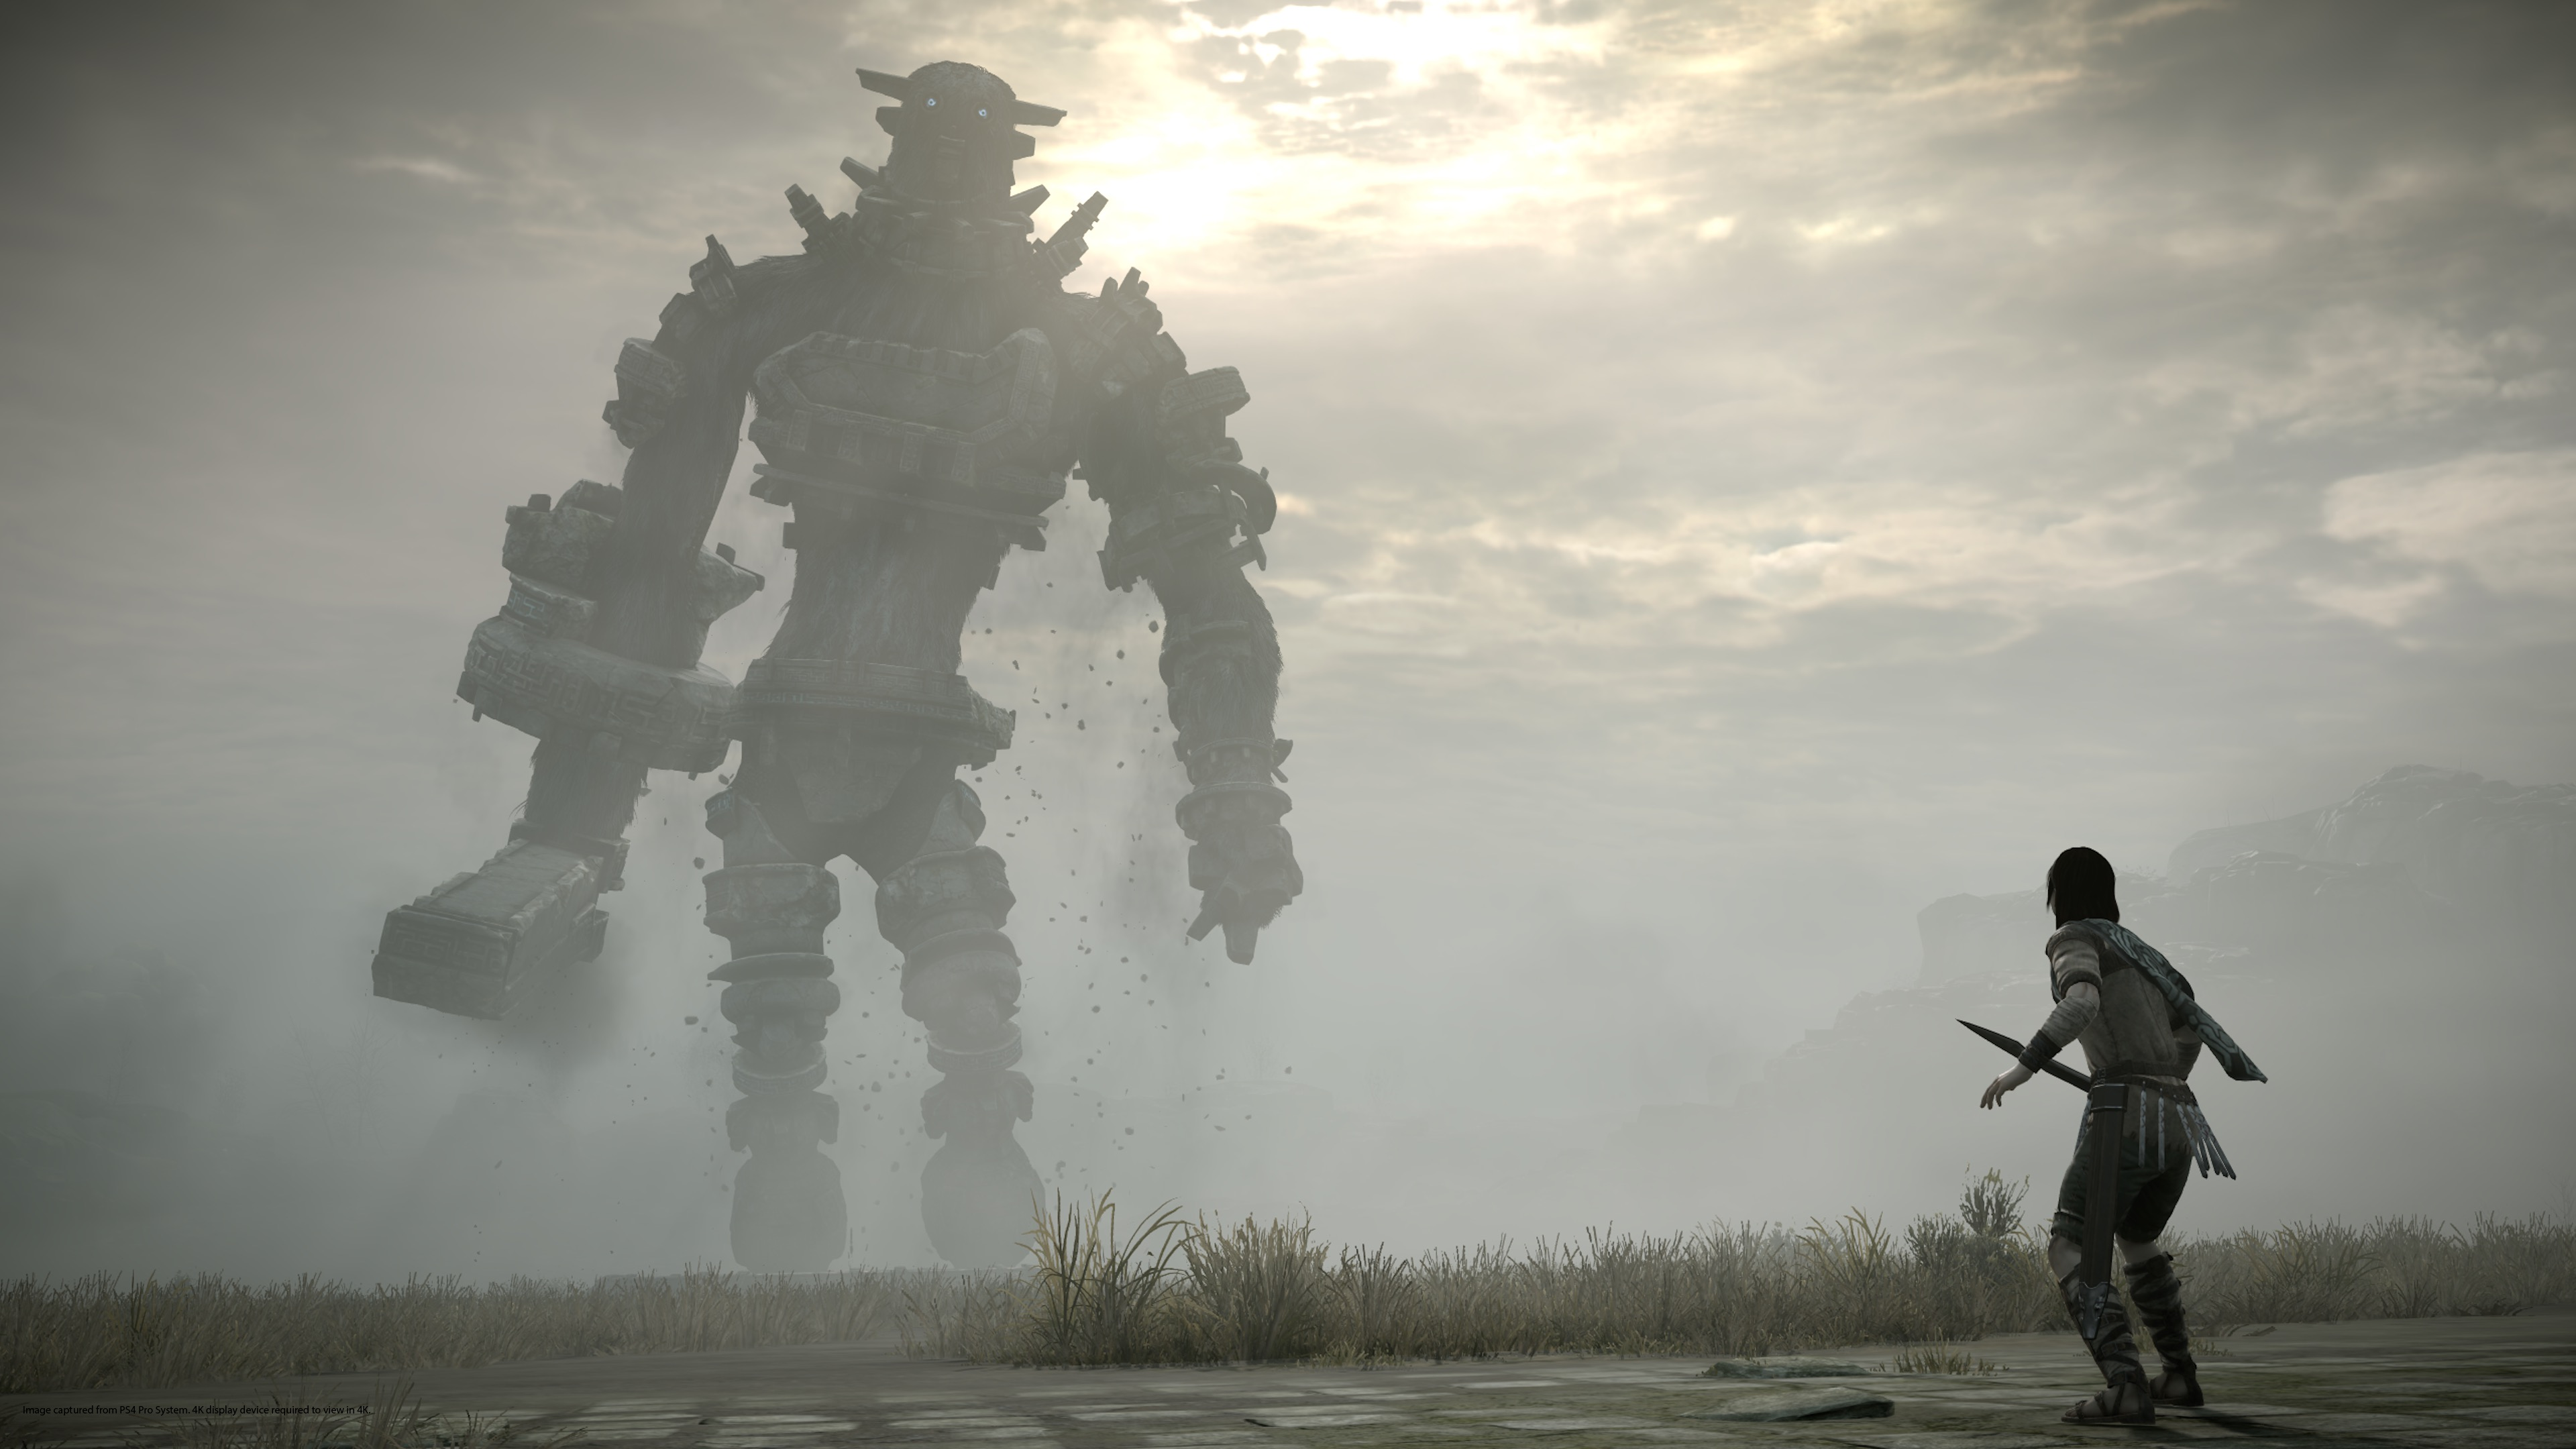 Psx 2017 shadow of the colossus collectors edition ps4 pro - Shadow of the colossus iphone wallpaper ...